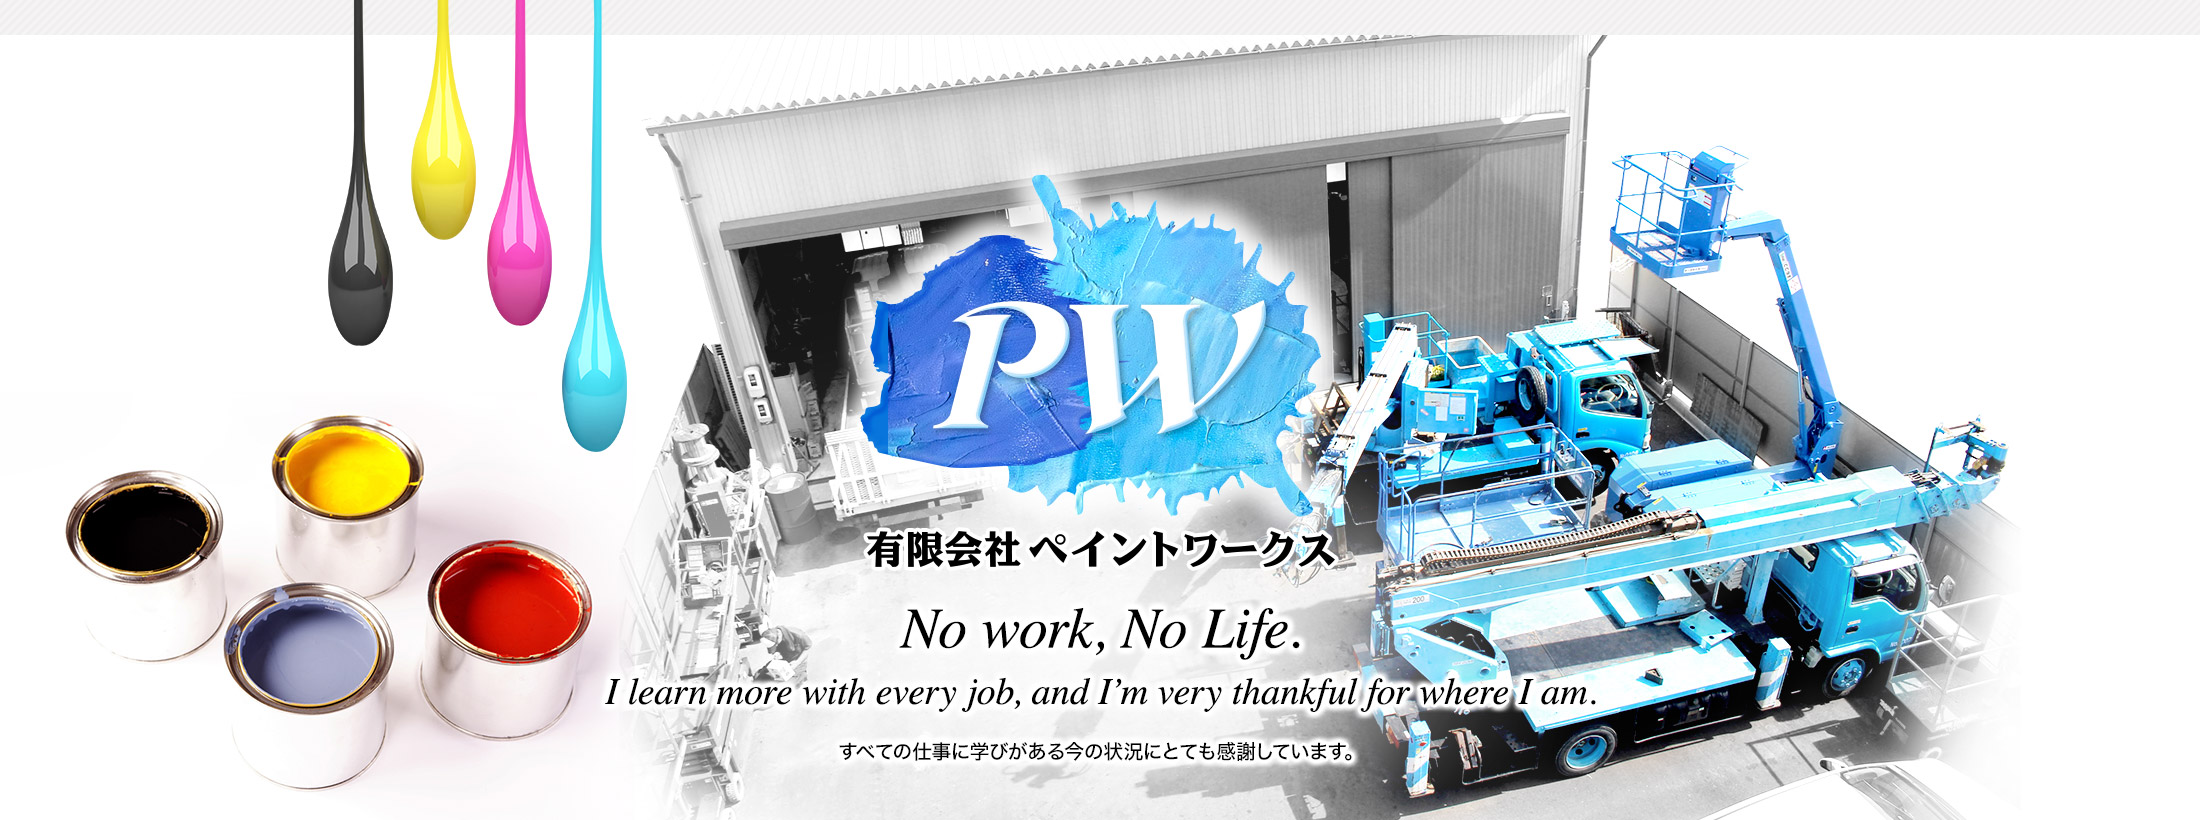 No work, No Life. I learn more with every job, and I'm very thankful for where I am.すべての仕事に学びがある今の状況にとても感謝しています。